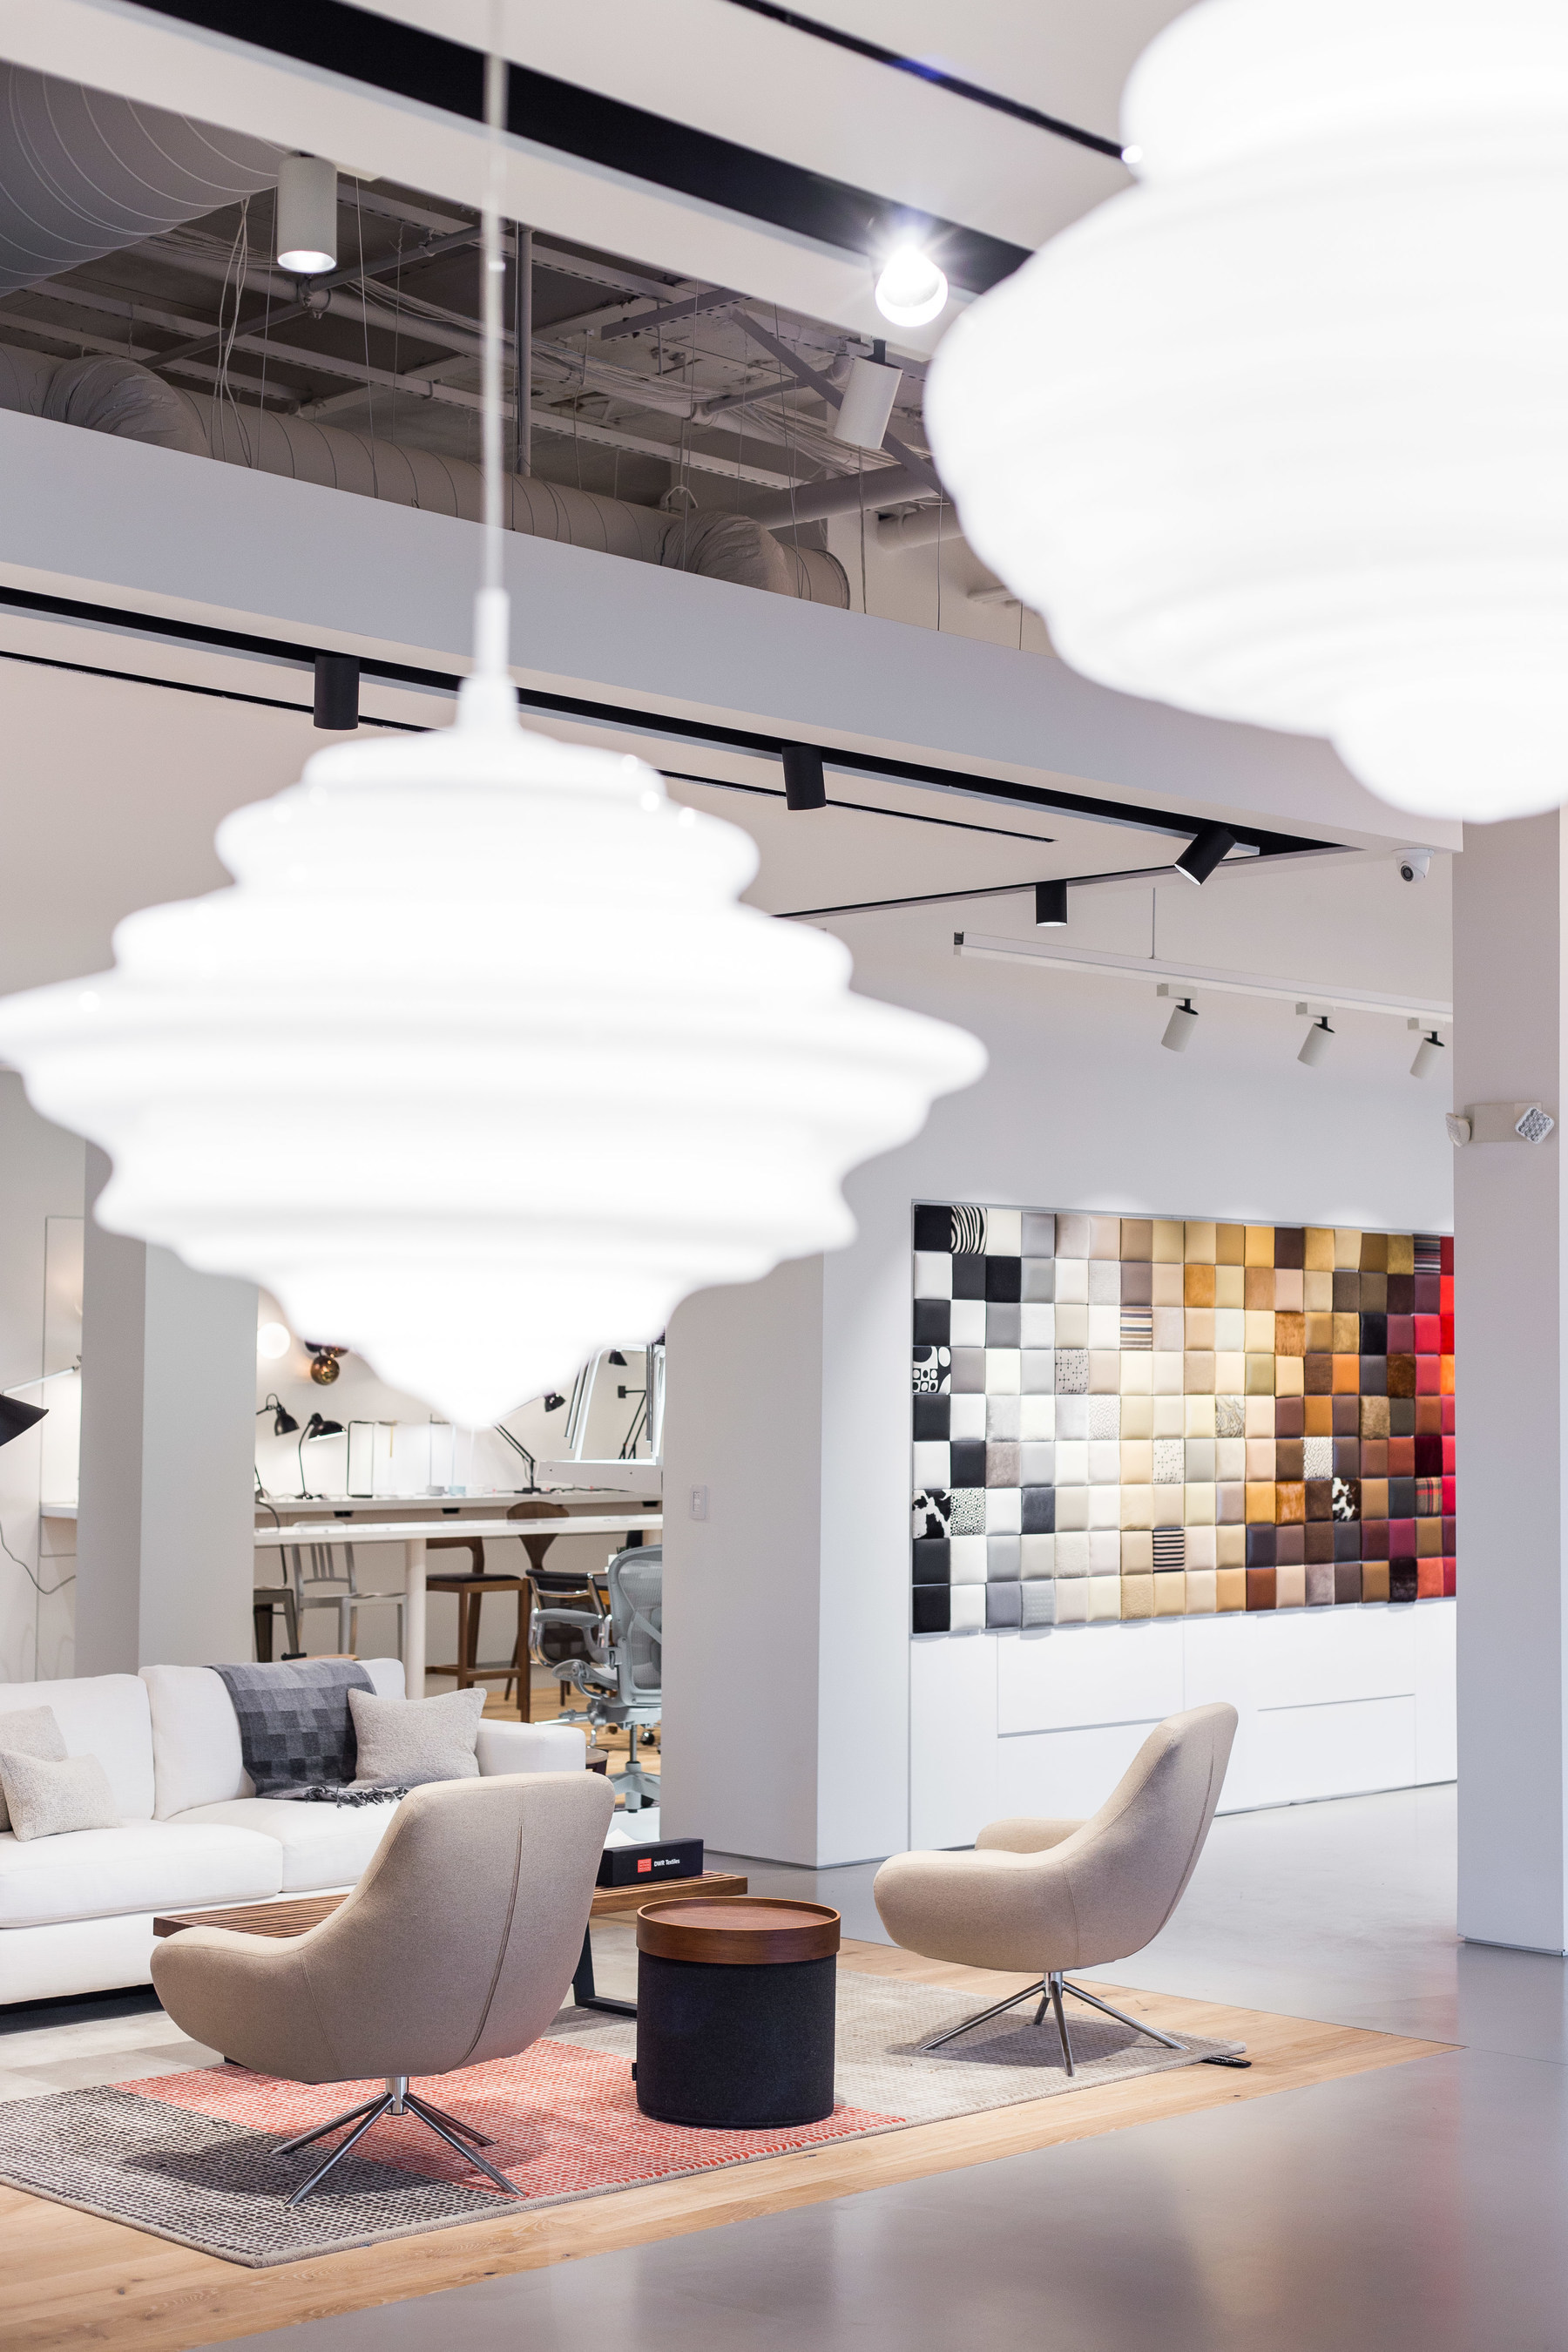 Shoppers looking to individualize their decor will love the Swatch Wall - shown in the distance - which shows off more than 300 of the thousands of upholstery options available. Photo: Alex Kusak Smith